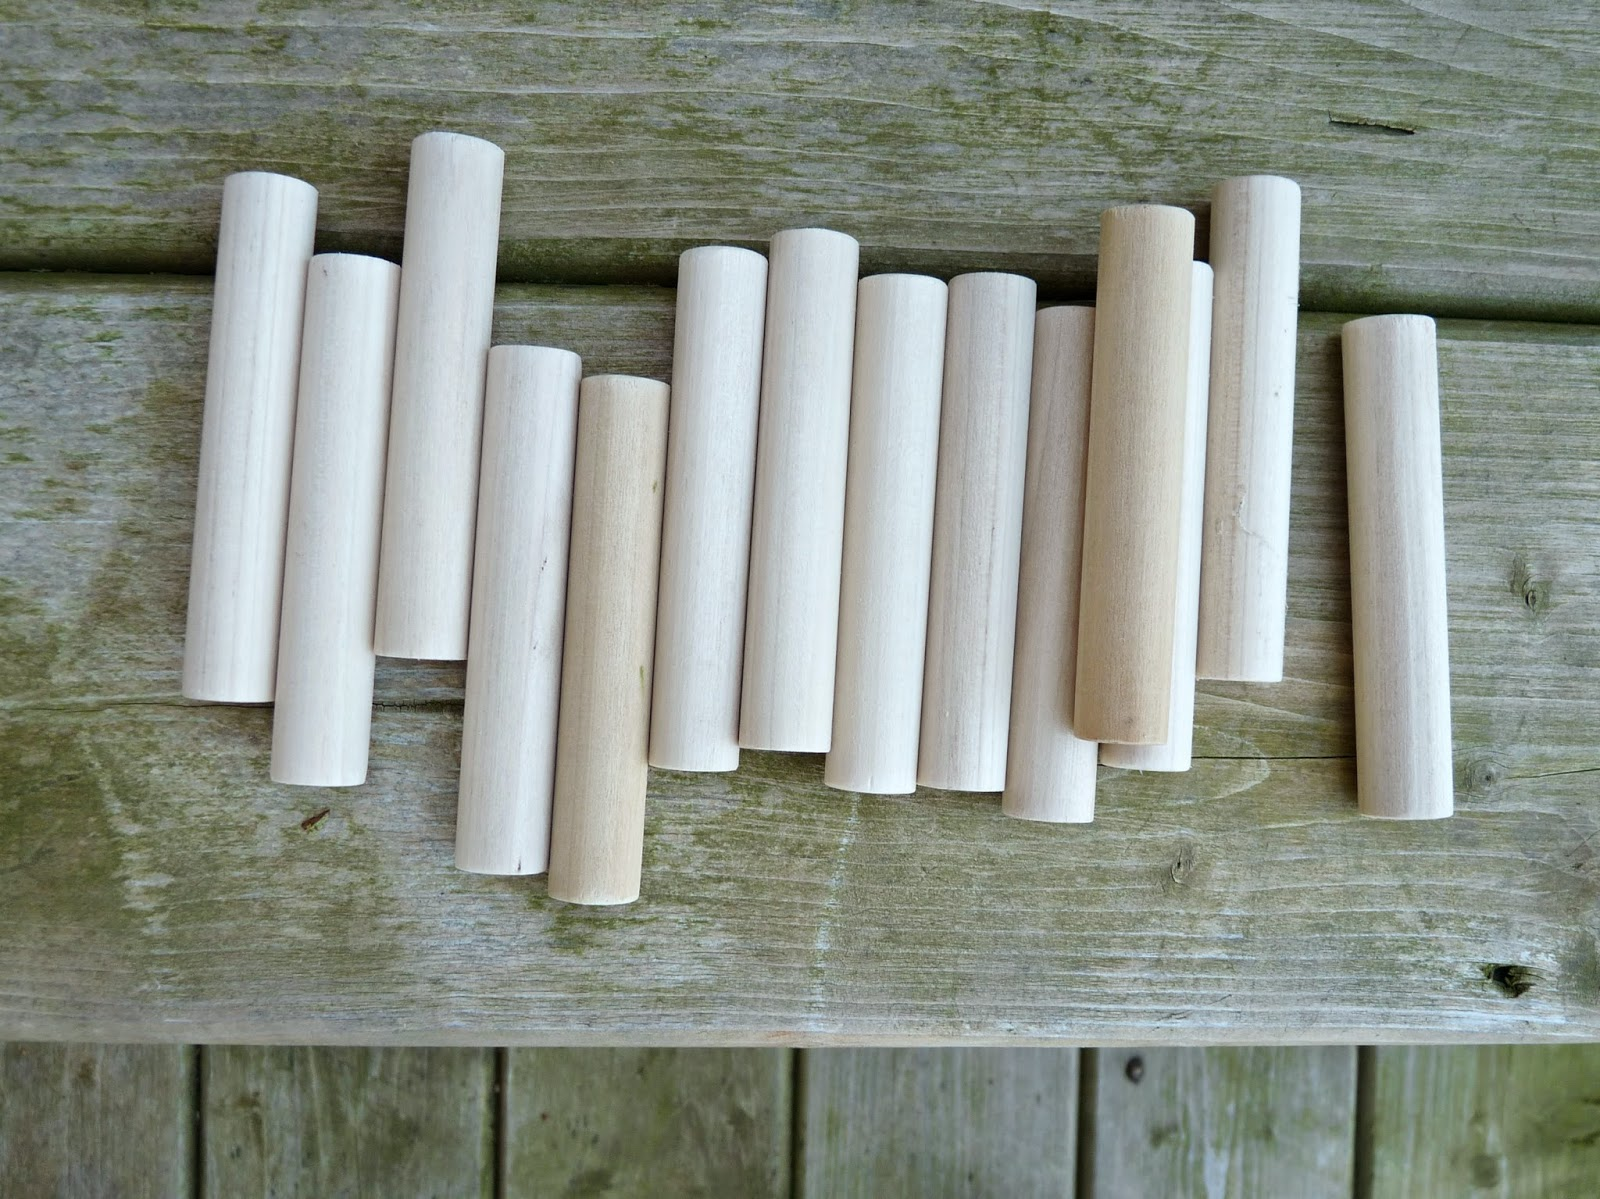 Projects using wood dowel pegs